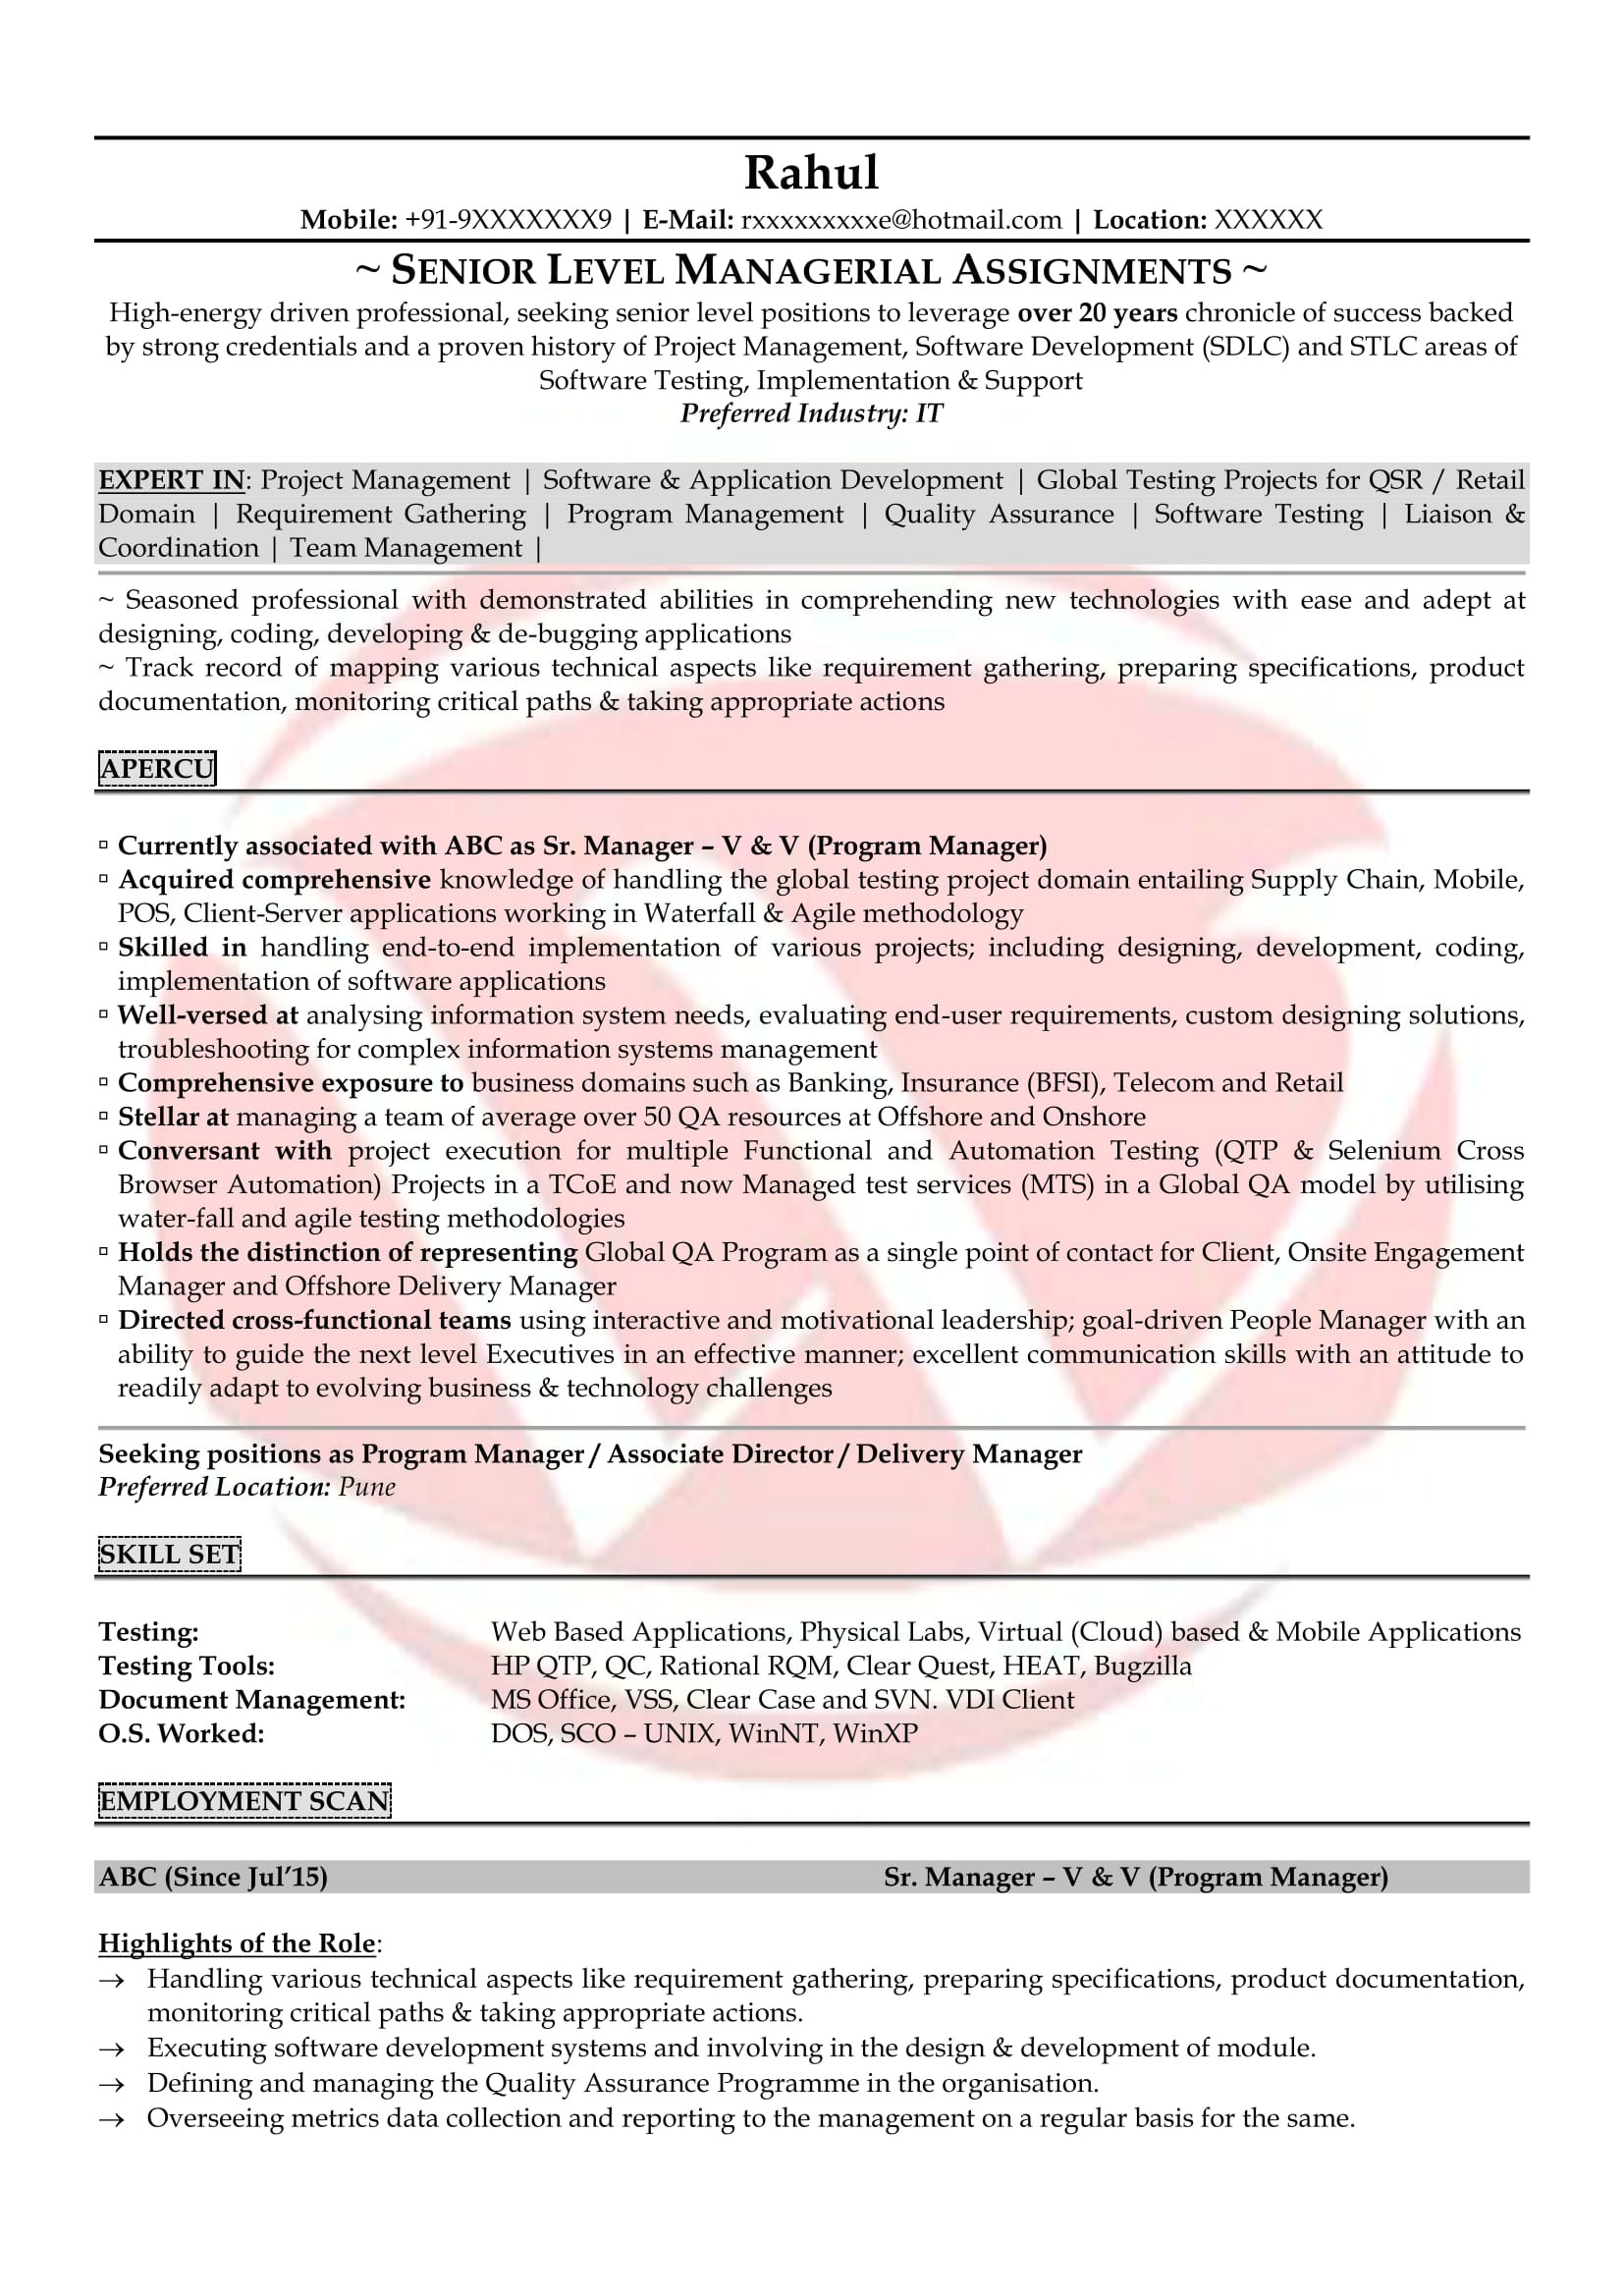 Sample Resume for 2 Years Experience In Manual Testing 34 Sample Resume for 2 Years Experience In Manual Testing